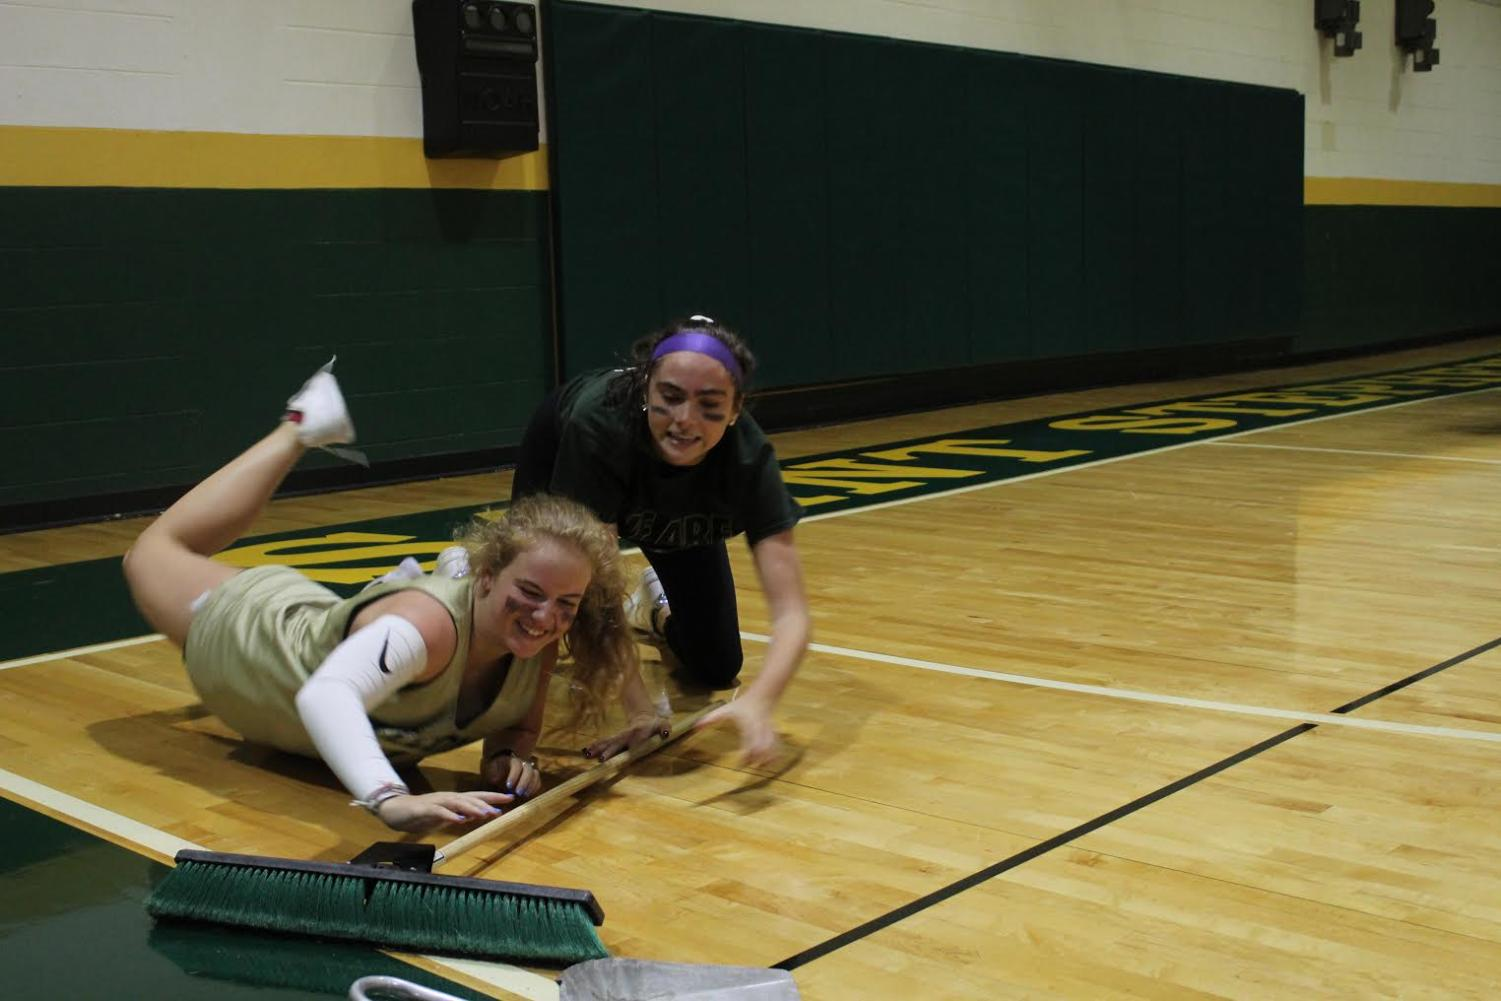 Seniors+Cate+Mulqueen+and+Hannah+McCurry+add+a+humorous+skit+to+the+game.